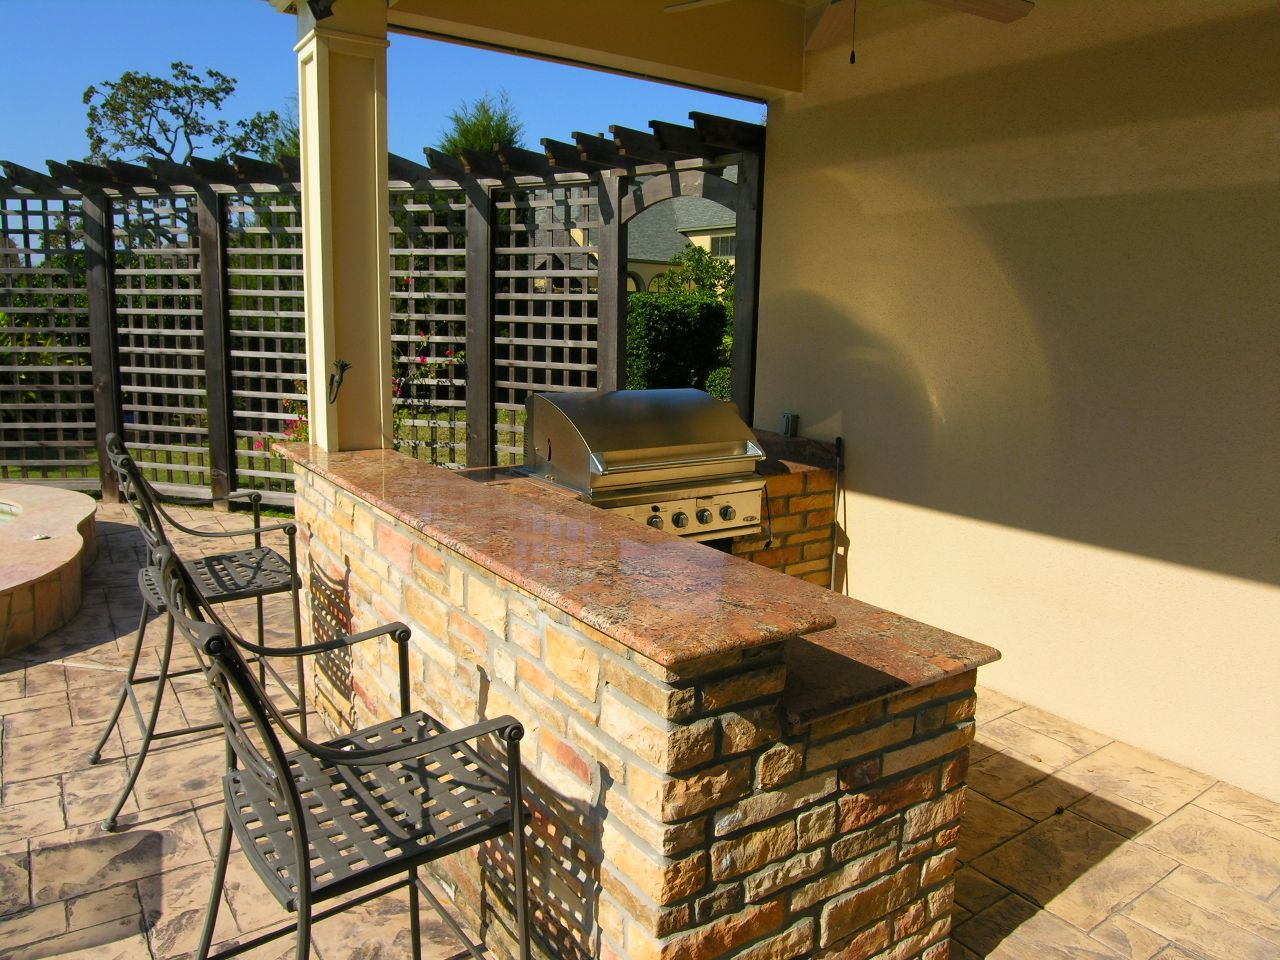 Outdoor bar area building my new home pinterest bar for Outdoor kitchen area ideas